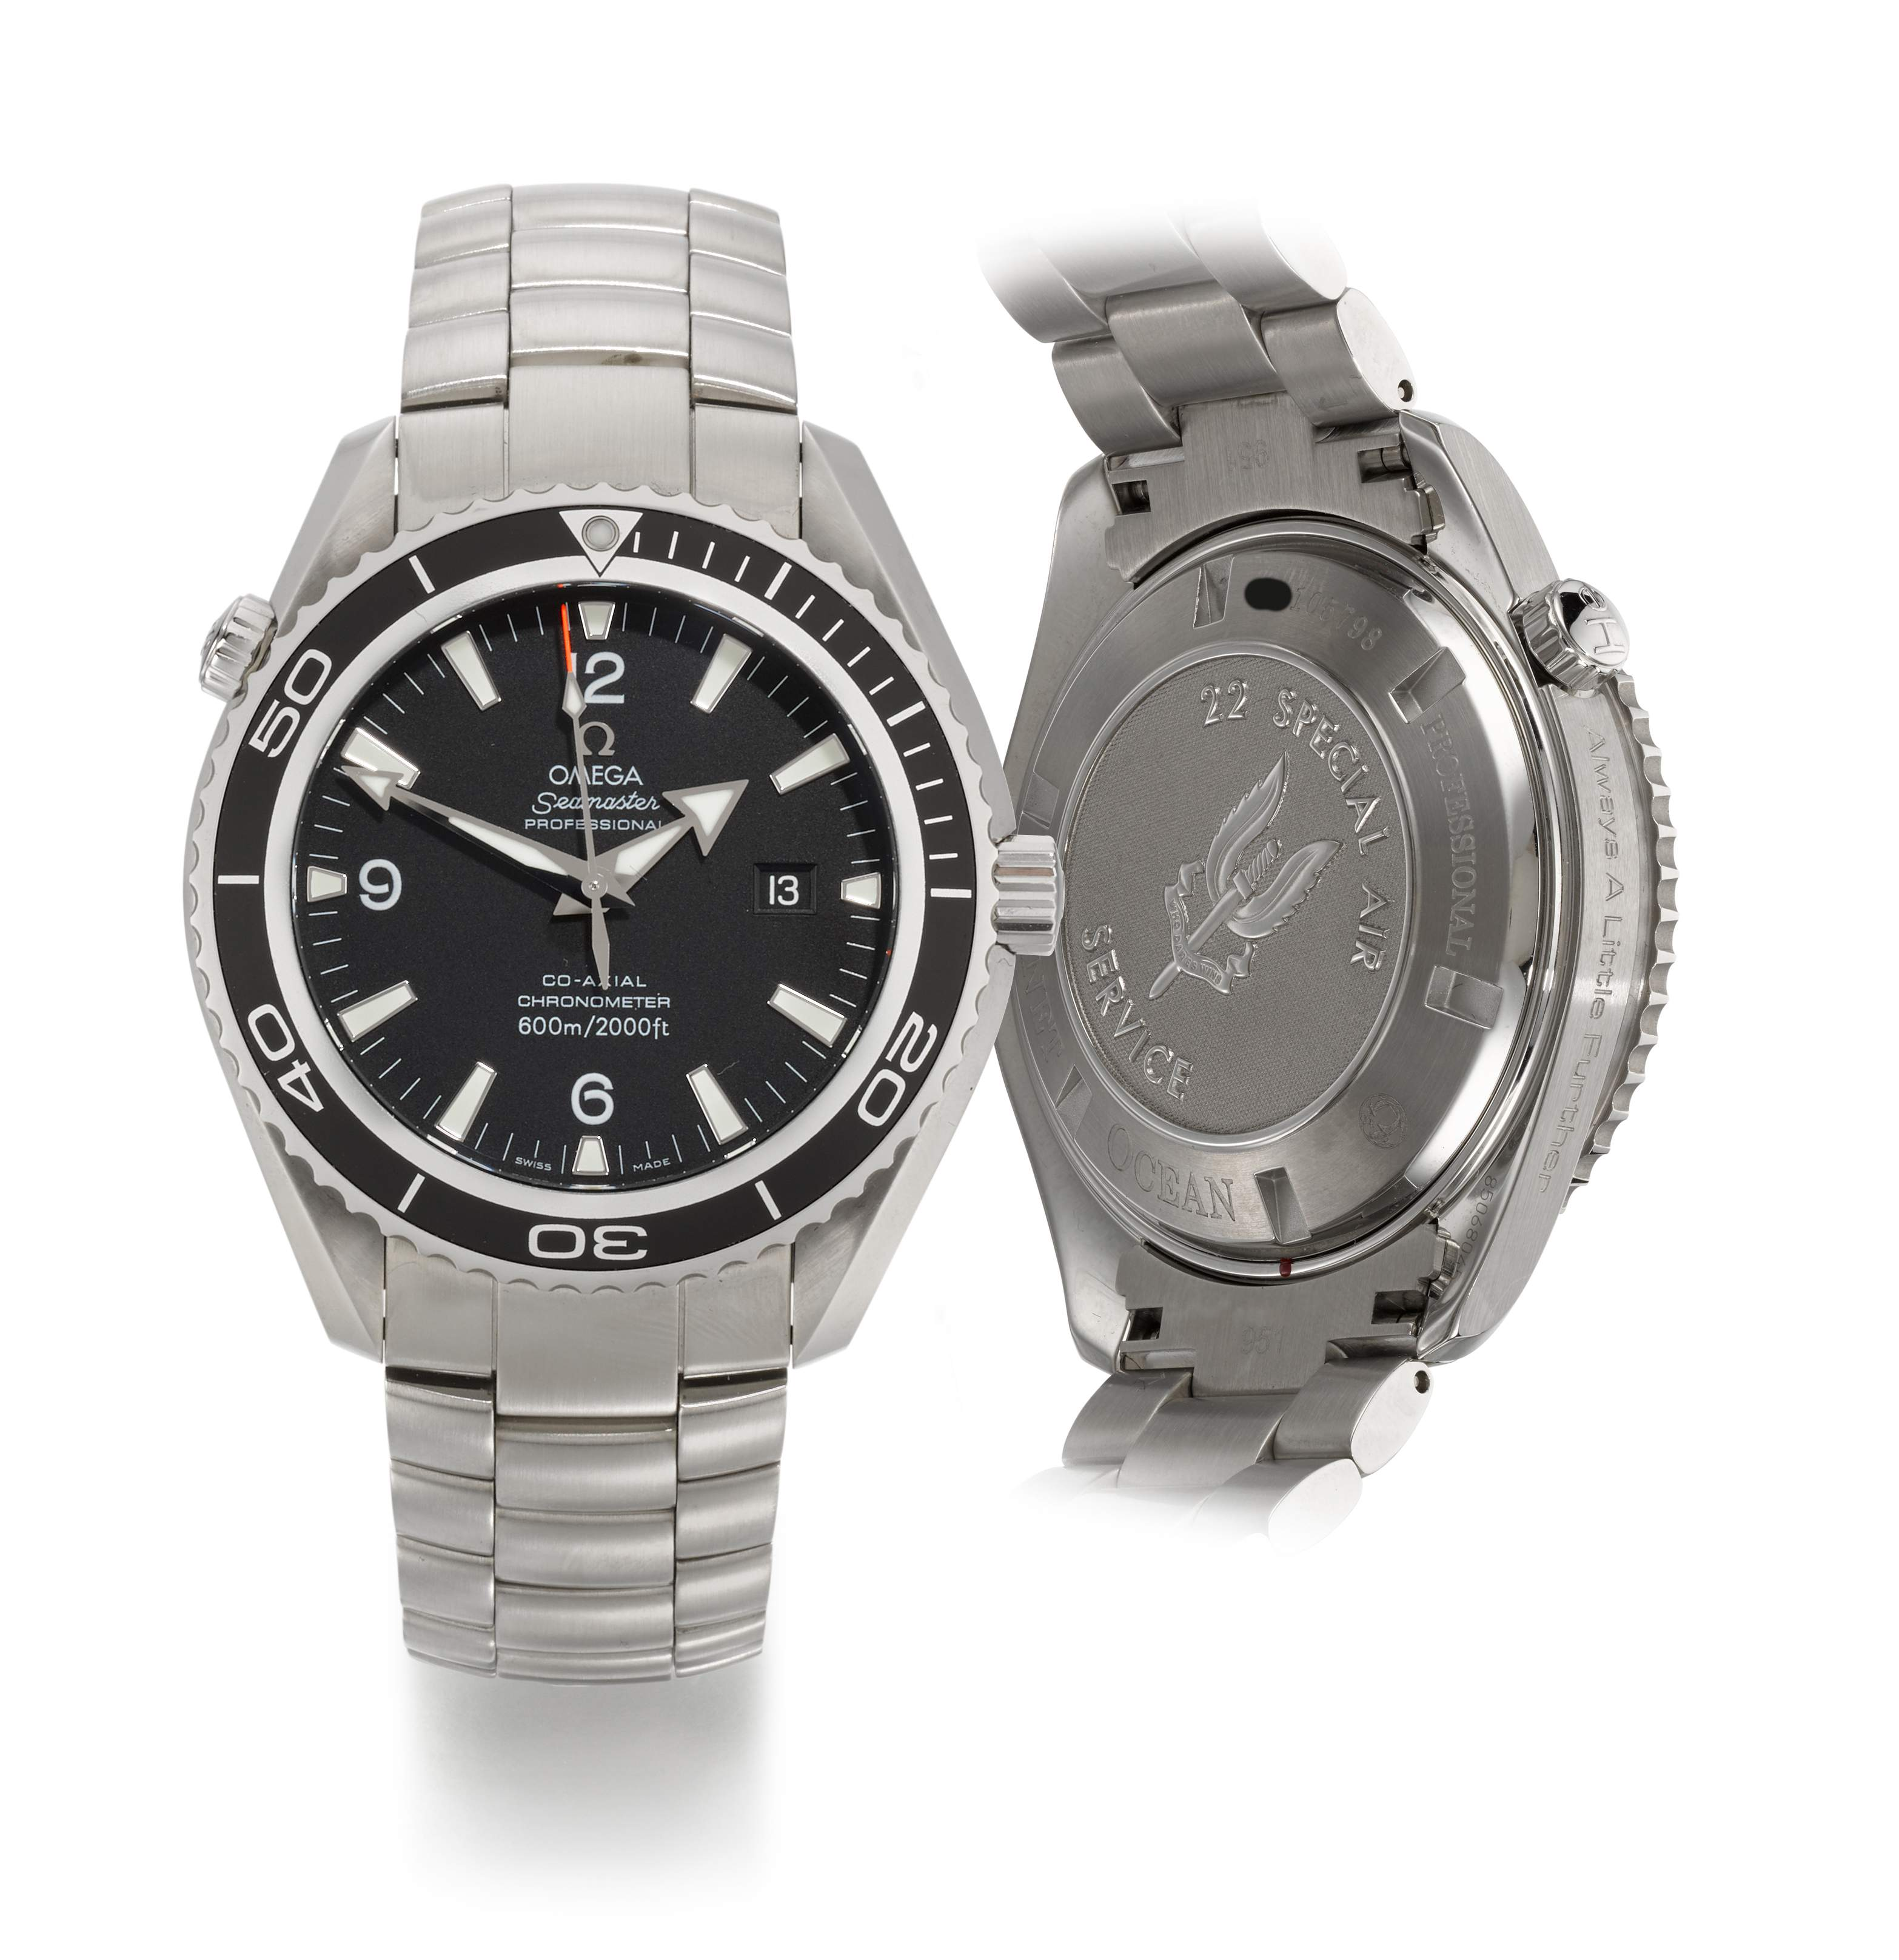 OMEGA | SEAMASTER PLANET OCEAN XL, 22 SPECIAL AIR SERVICE, REFERENCE 22005200 MILITARY STAINLESS STEEL WRISTWATCH WITH DATE, HELIUM ESCAPE VALVE AND BRACELET, CIRCA 2011